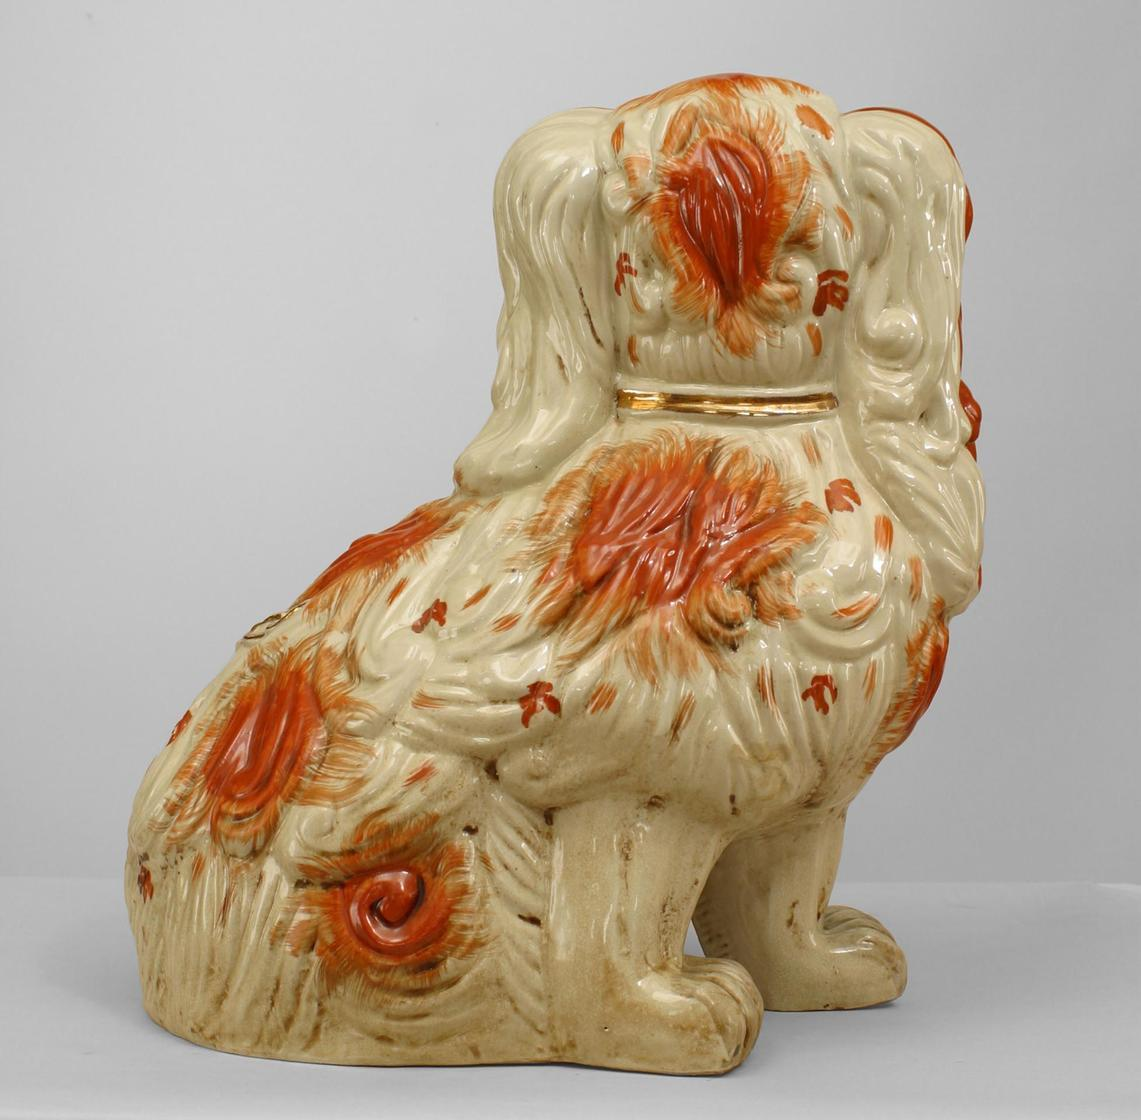 Pair of Early 20th Century English Staffordshire Spaniel Sculptures In Excellent Condition For Sale In New York, NY